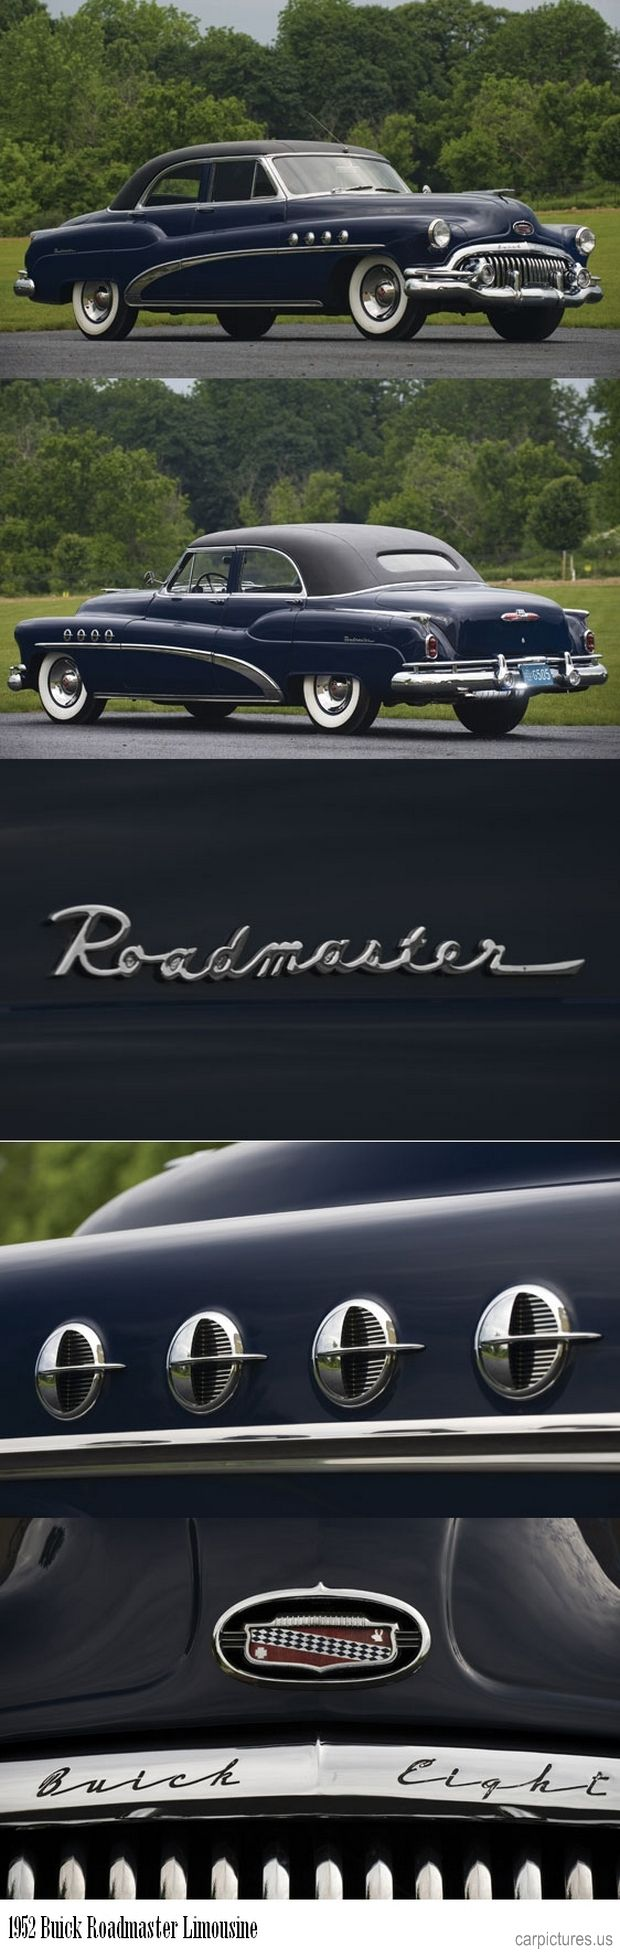 1952 Buick Roadmaster Limousine.   SealingsAndExpungements.com 888-9-EXPUNGE (888-939-7864) 24/7  Free evaluations/Low money down/Easy payments.  Sealing past mistakes. Opening new opportunities.